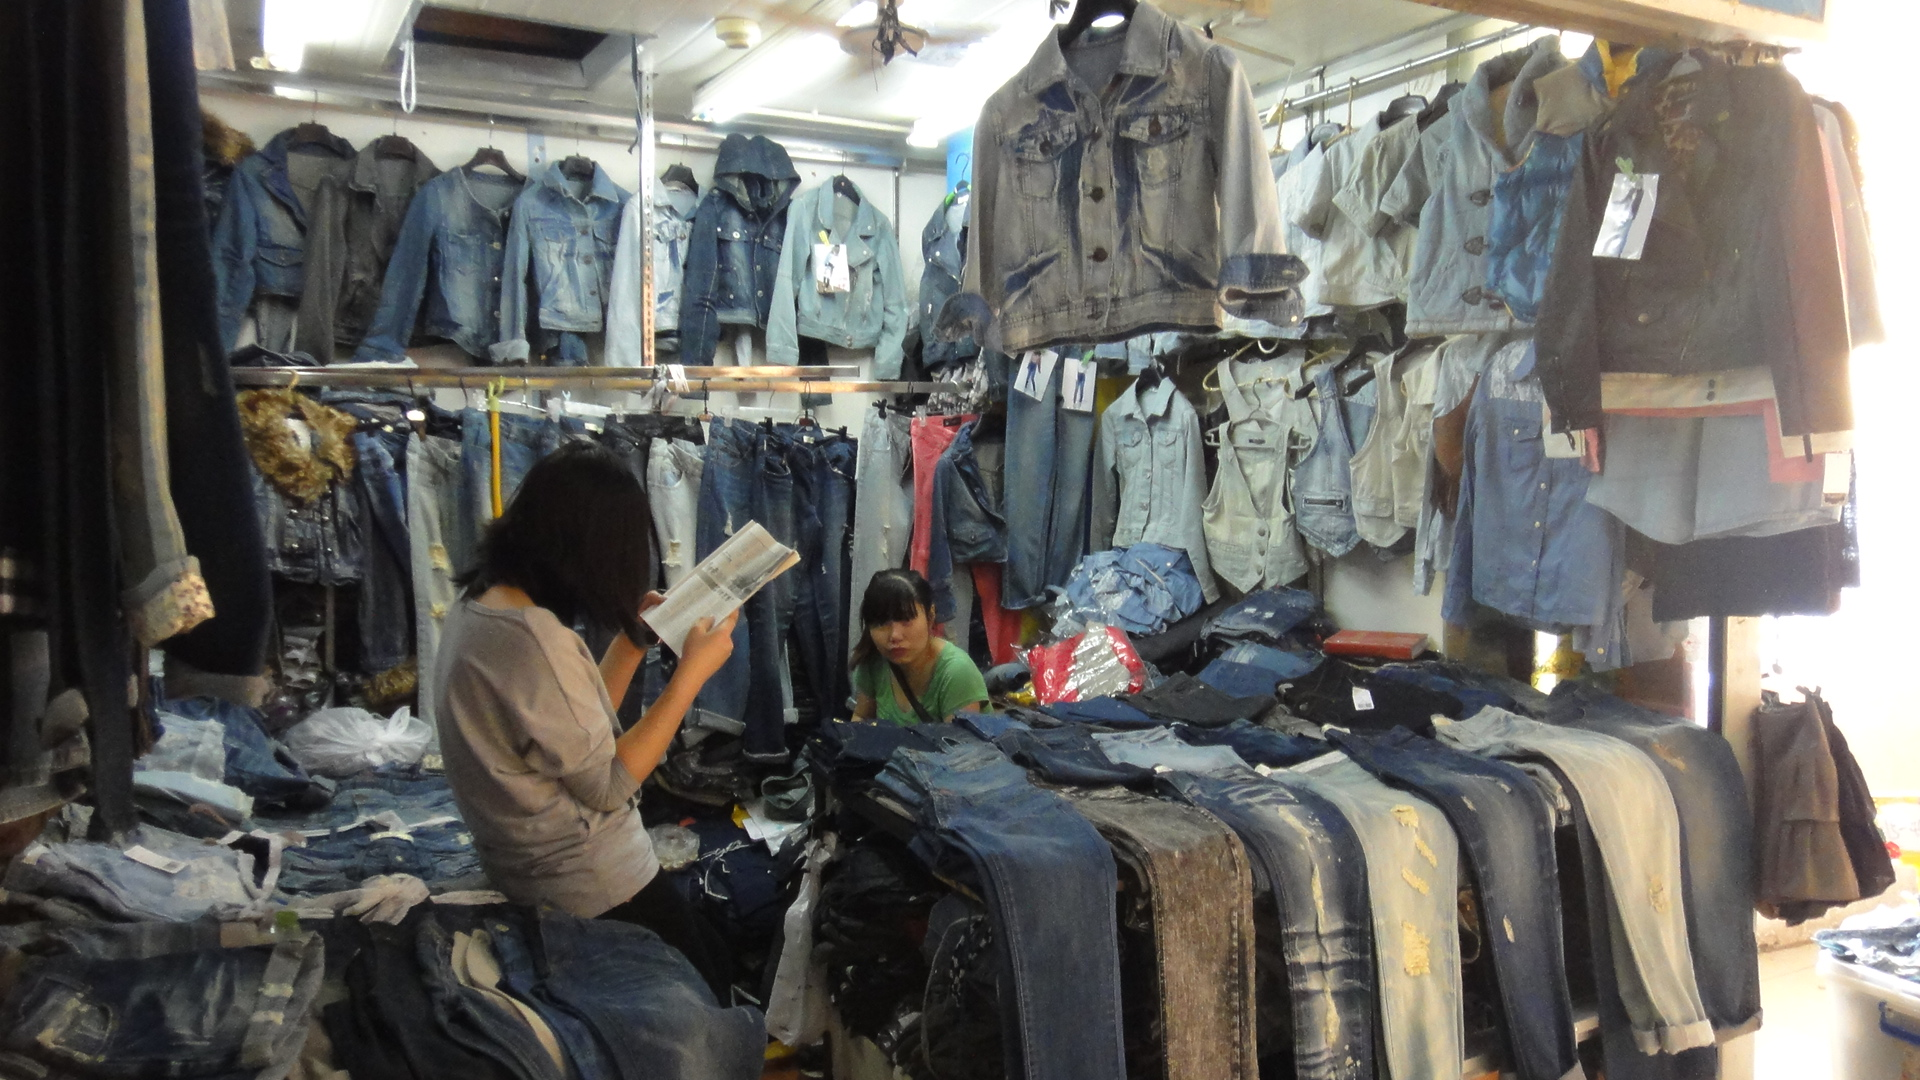 Wholesale clothing stores